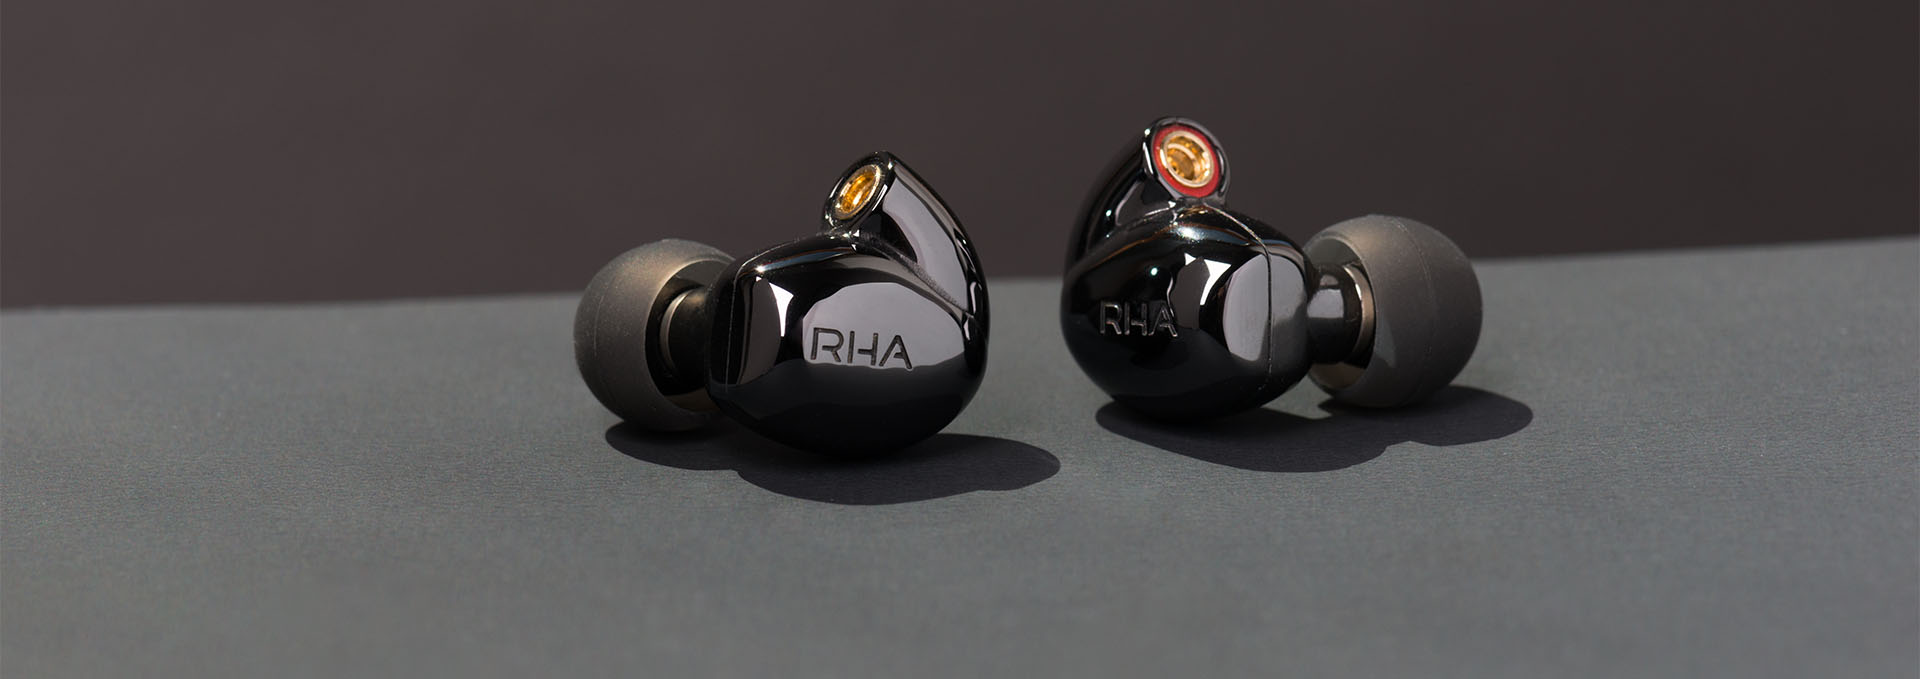 salasheadphones_rha_wireless_cl2